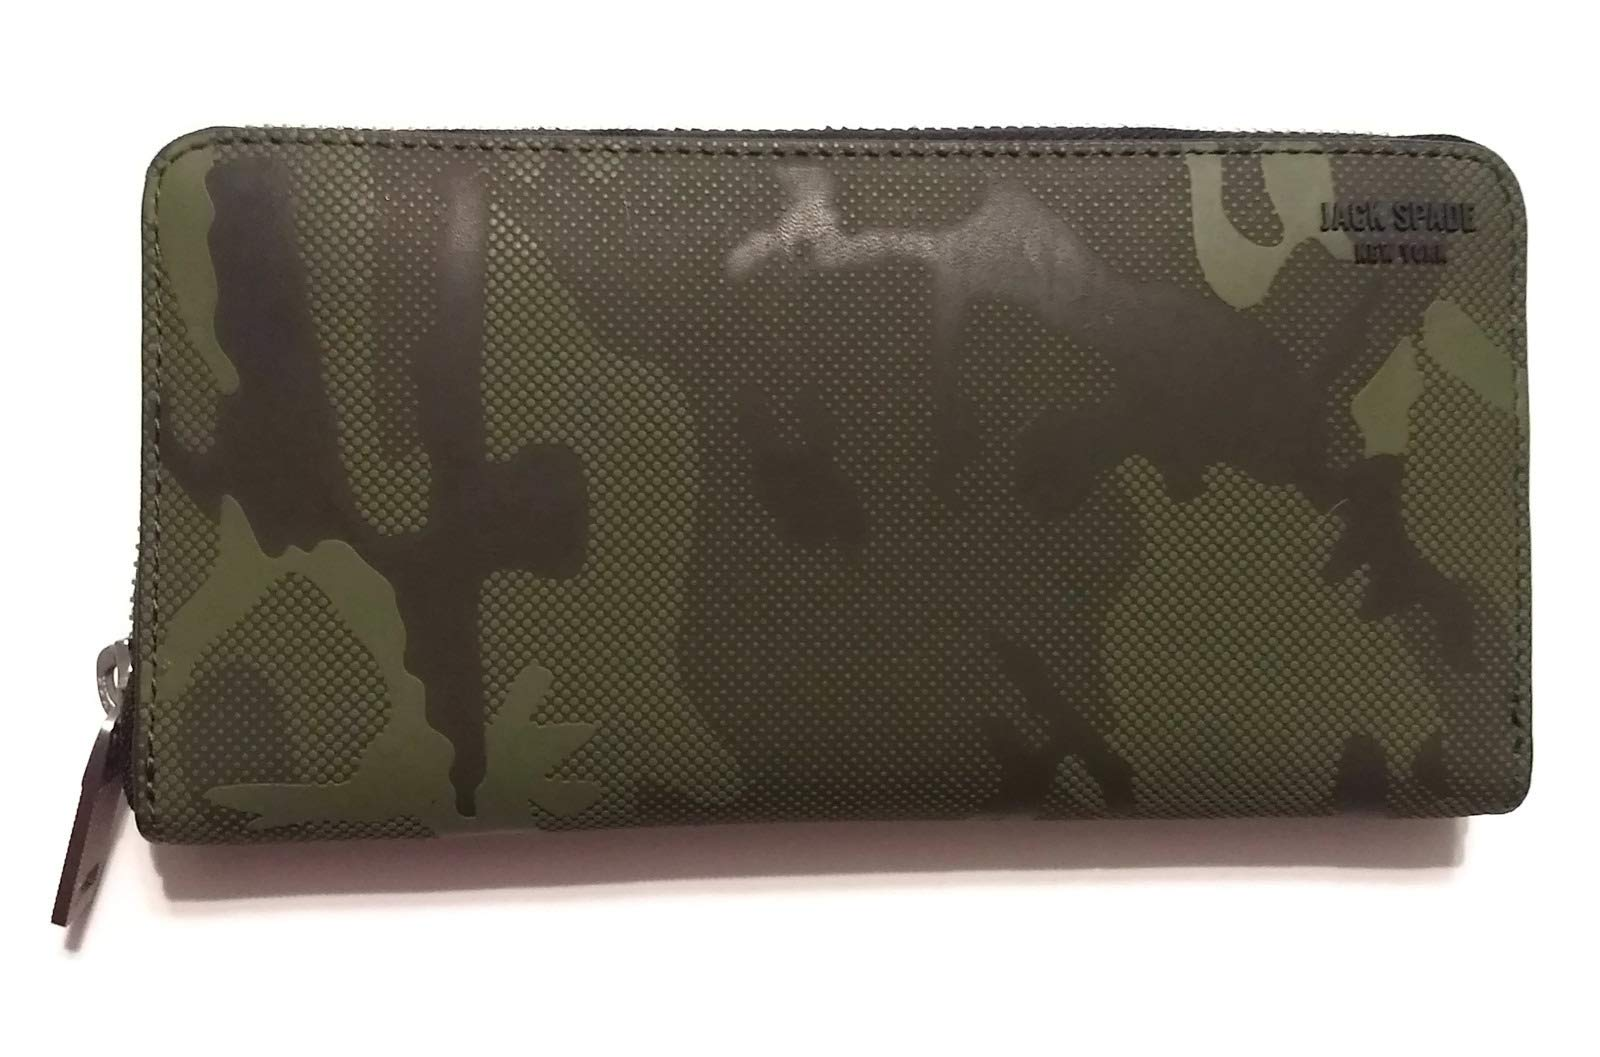 Jack Spade Men's Camo Dots Lg Zip Around Wallet, Army Green, One SIze